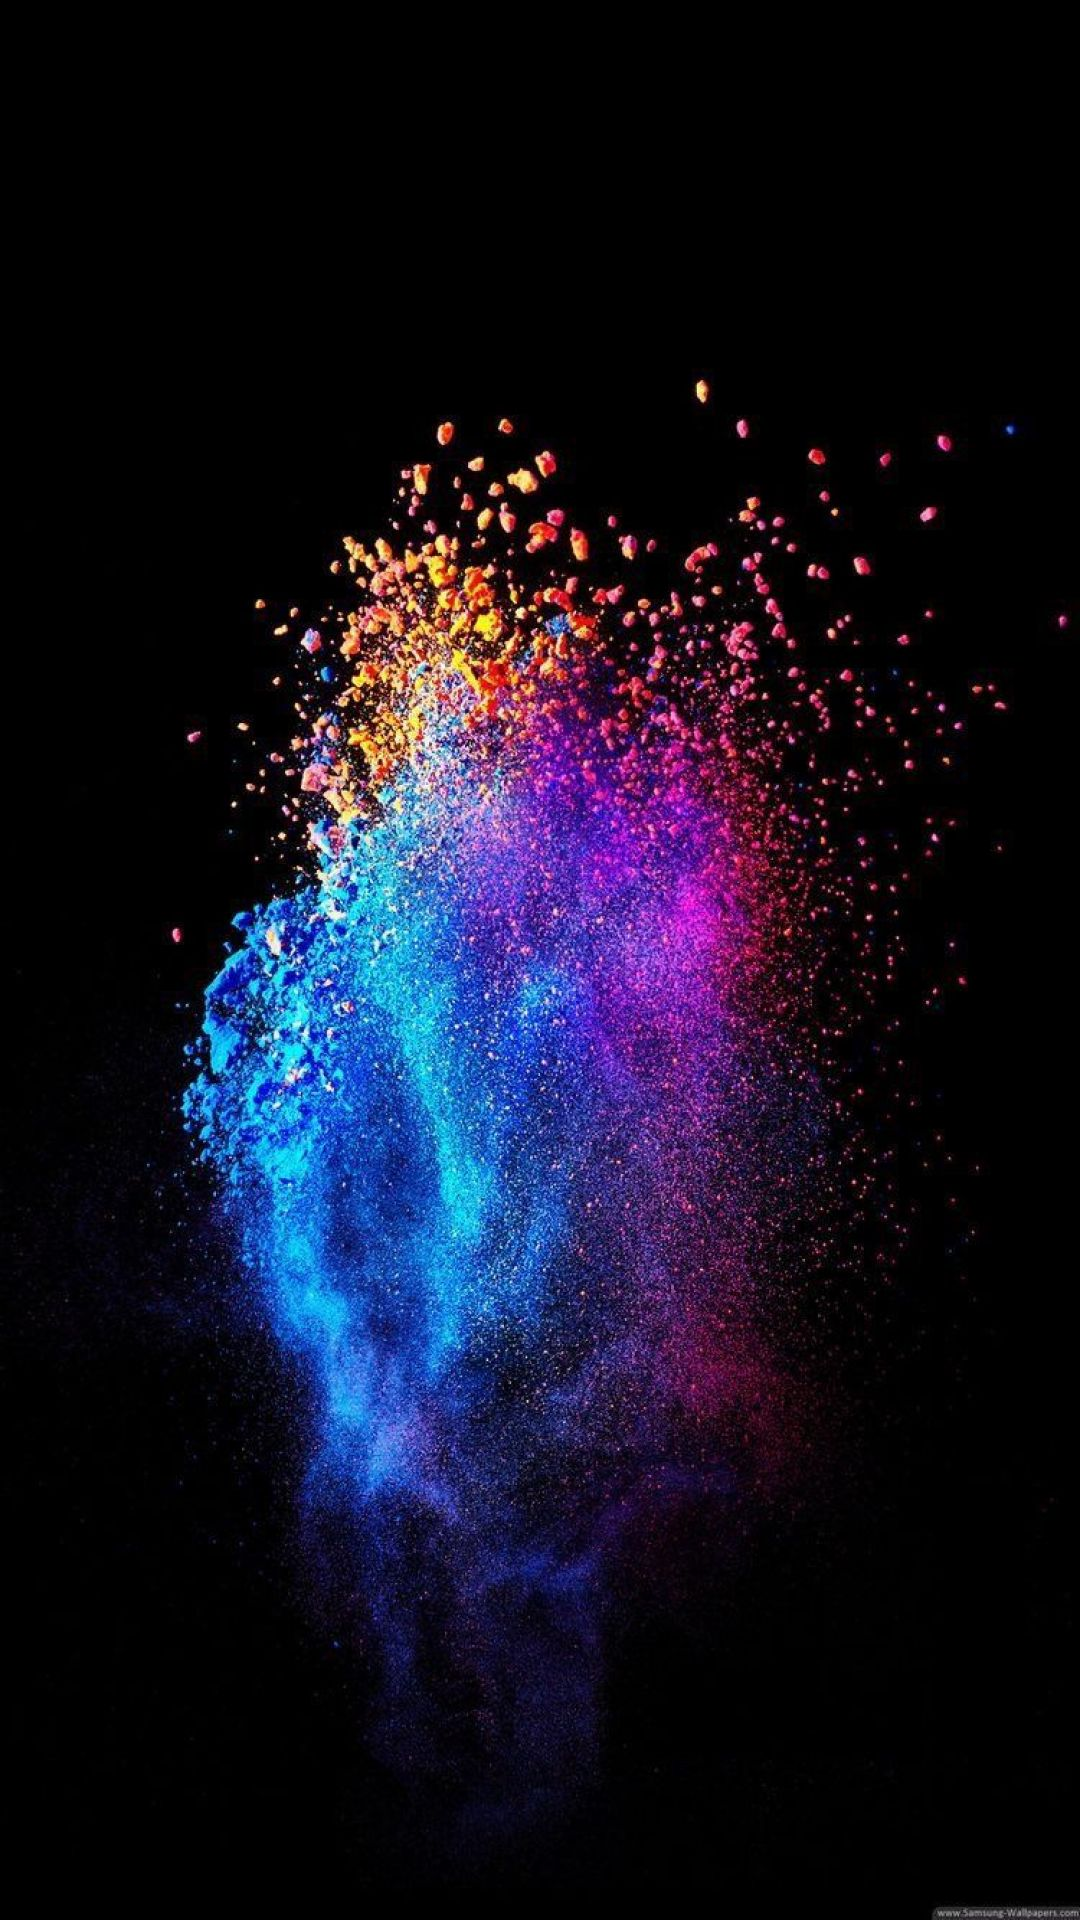 50 Hd Explosion Android Iphone Desktop Hd Backgrounds Wallpapers 1080p 4k 1080x1920 2020